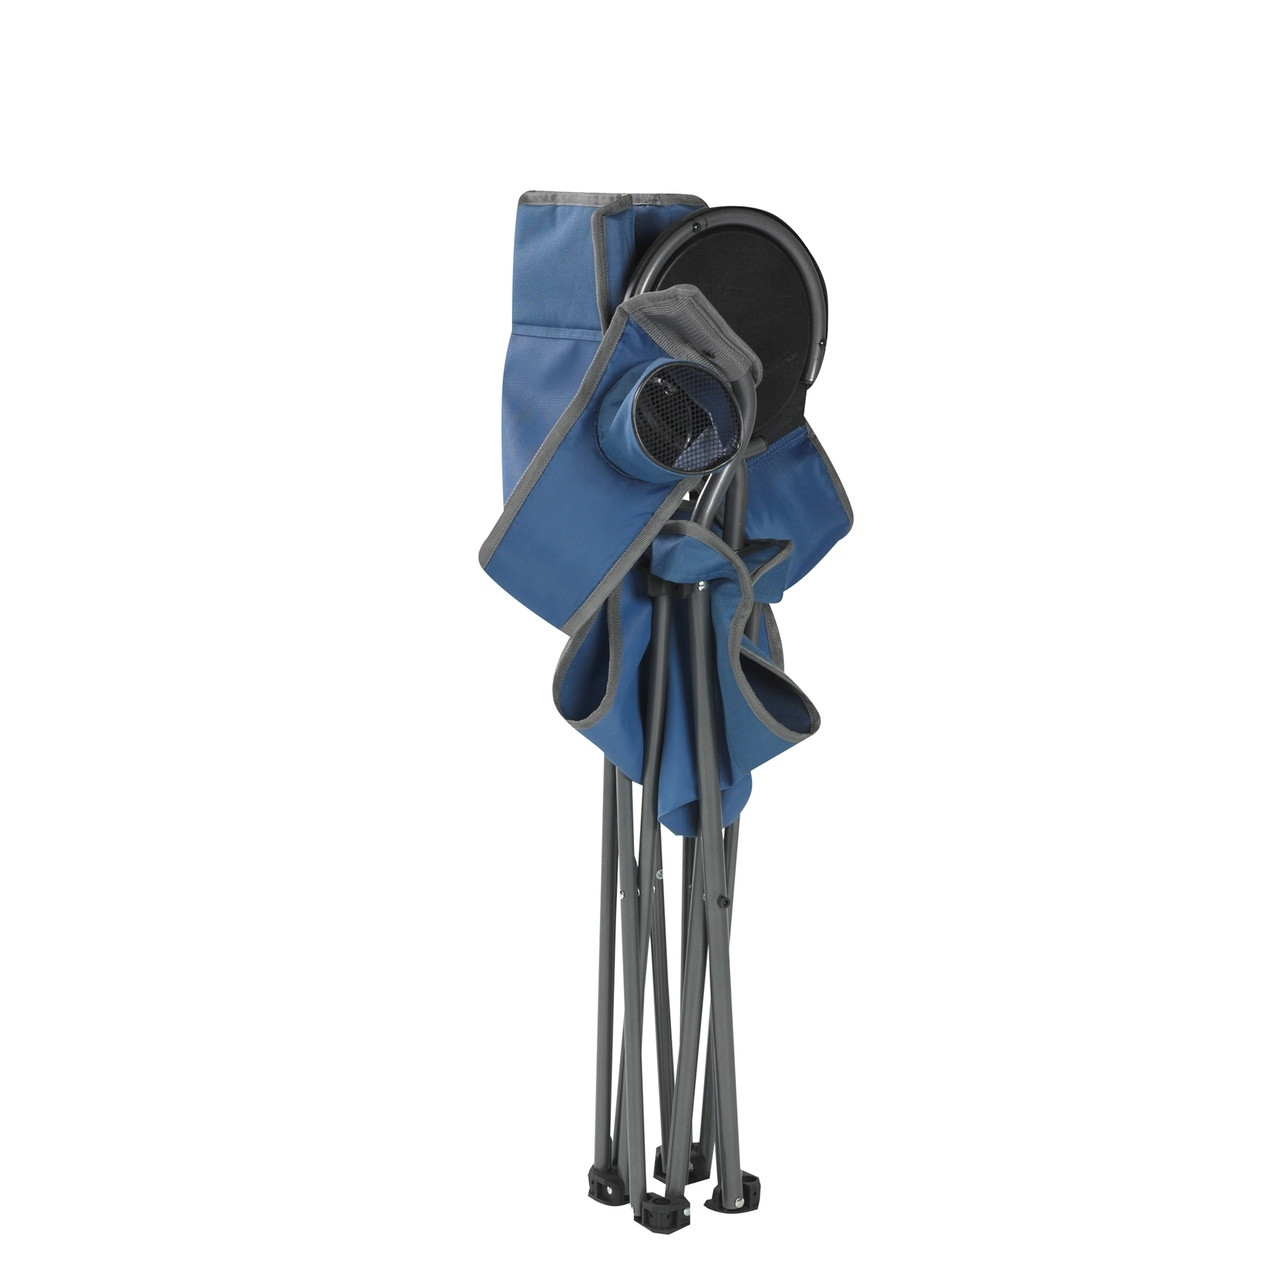 Wenzel Banquet Chair XL, blue and gray, standing folded up